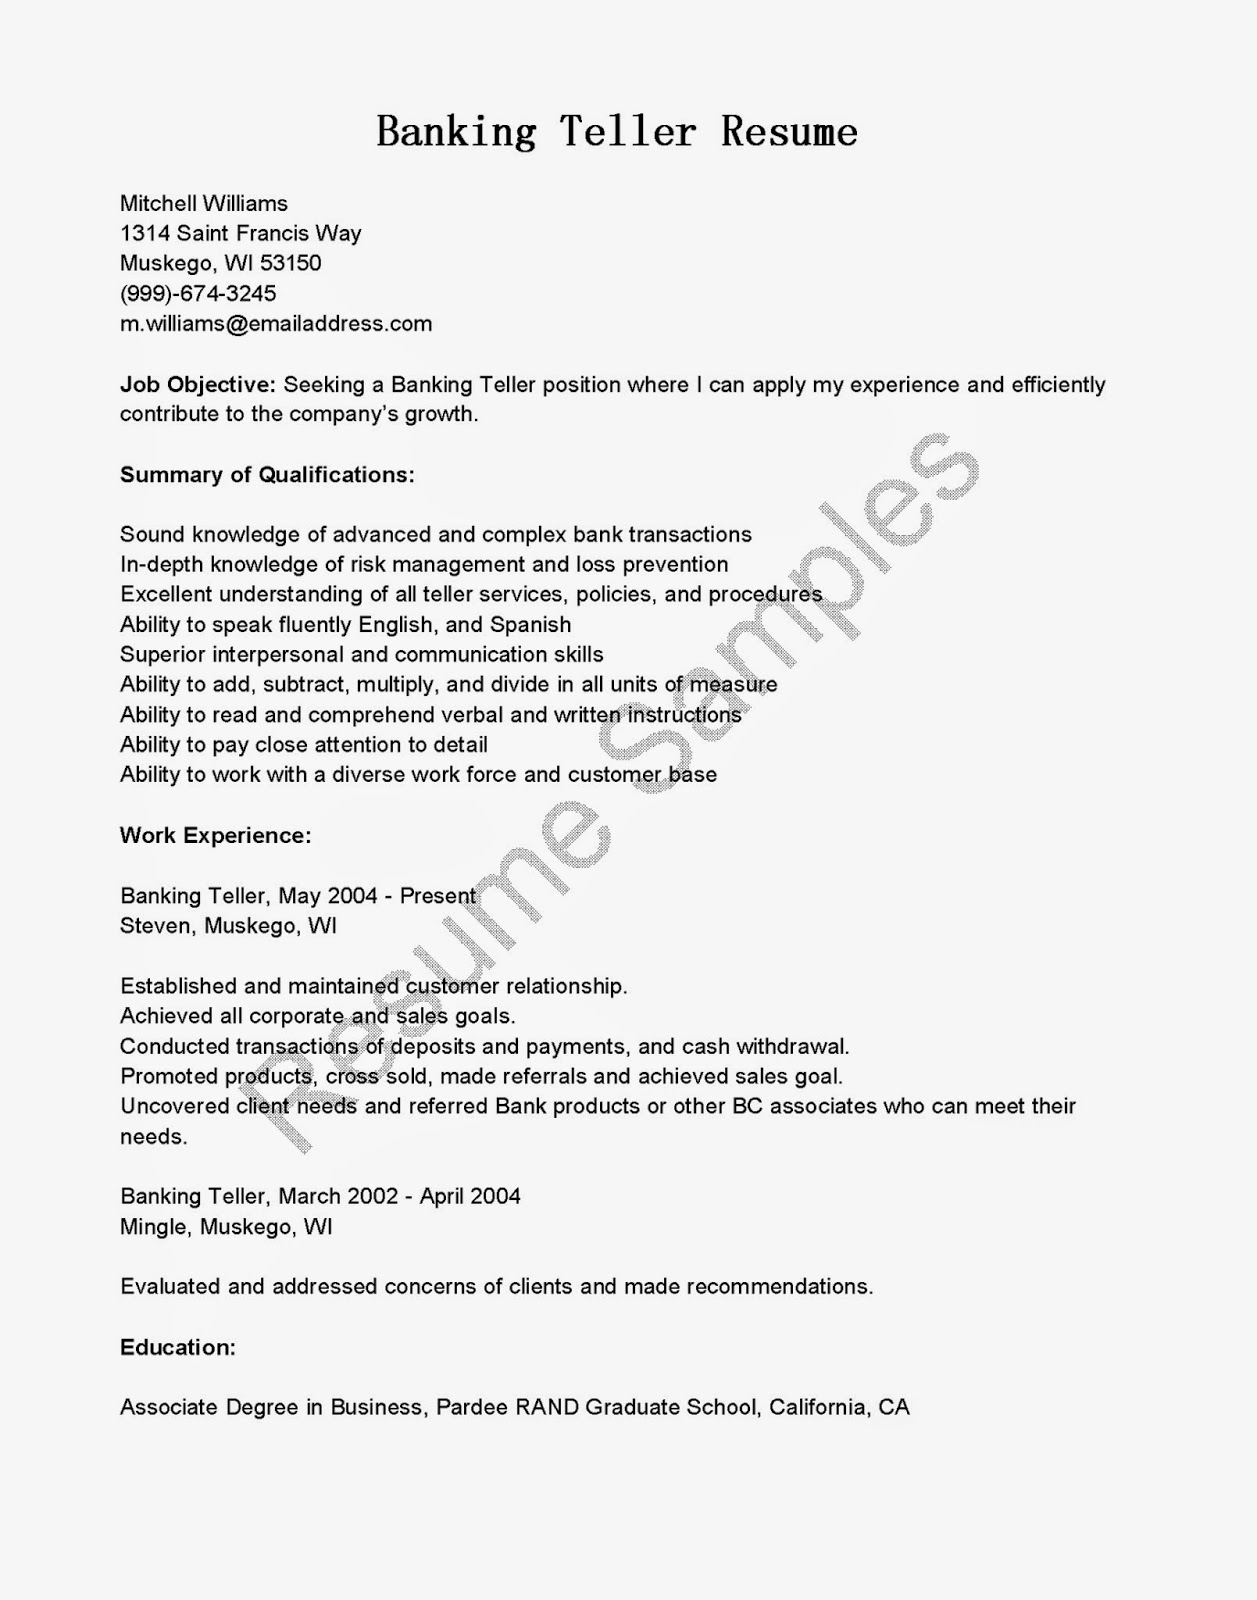 a call center cover letter - Cover Letter For Bank Teller Position